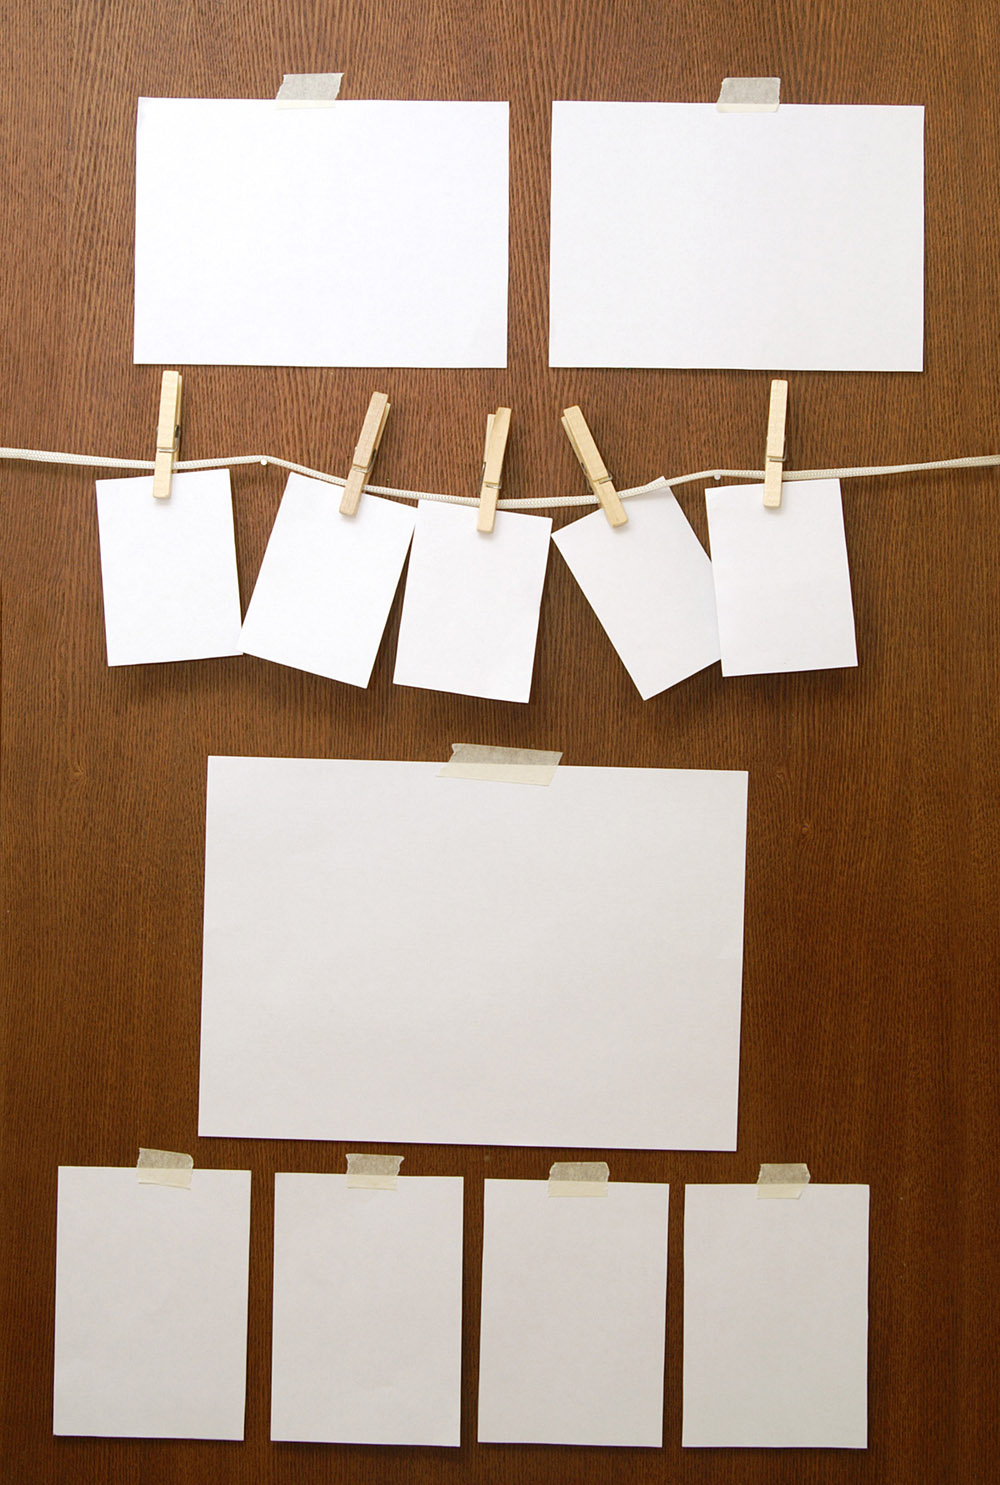 Blank paper picture 22976